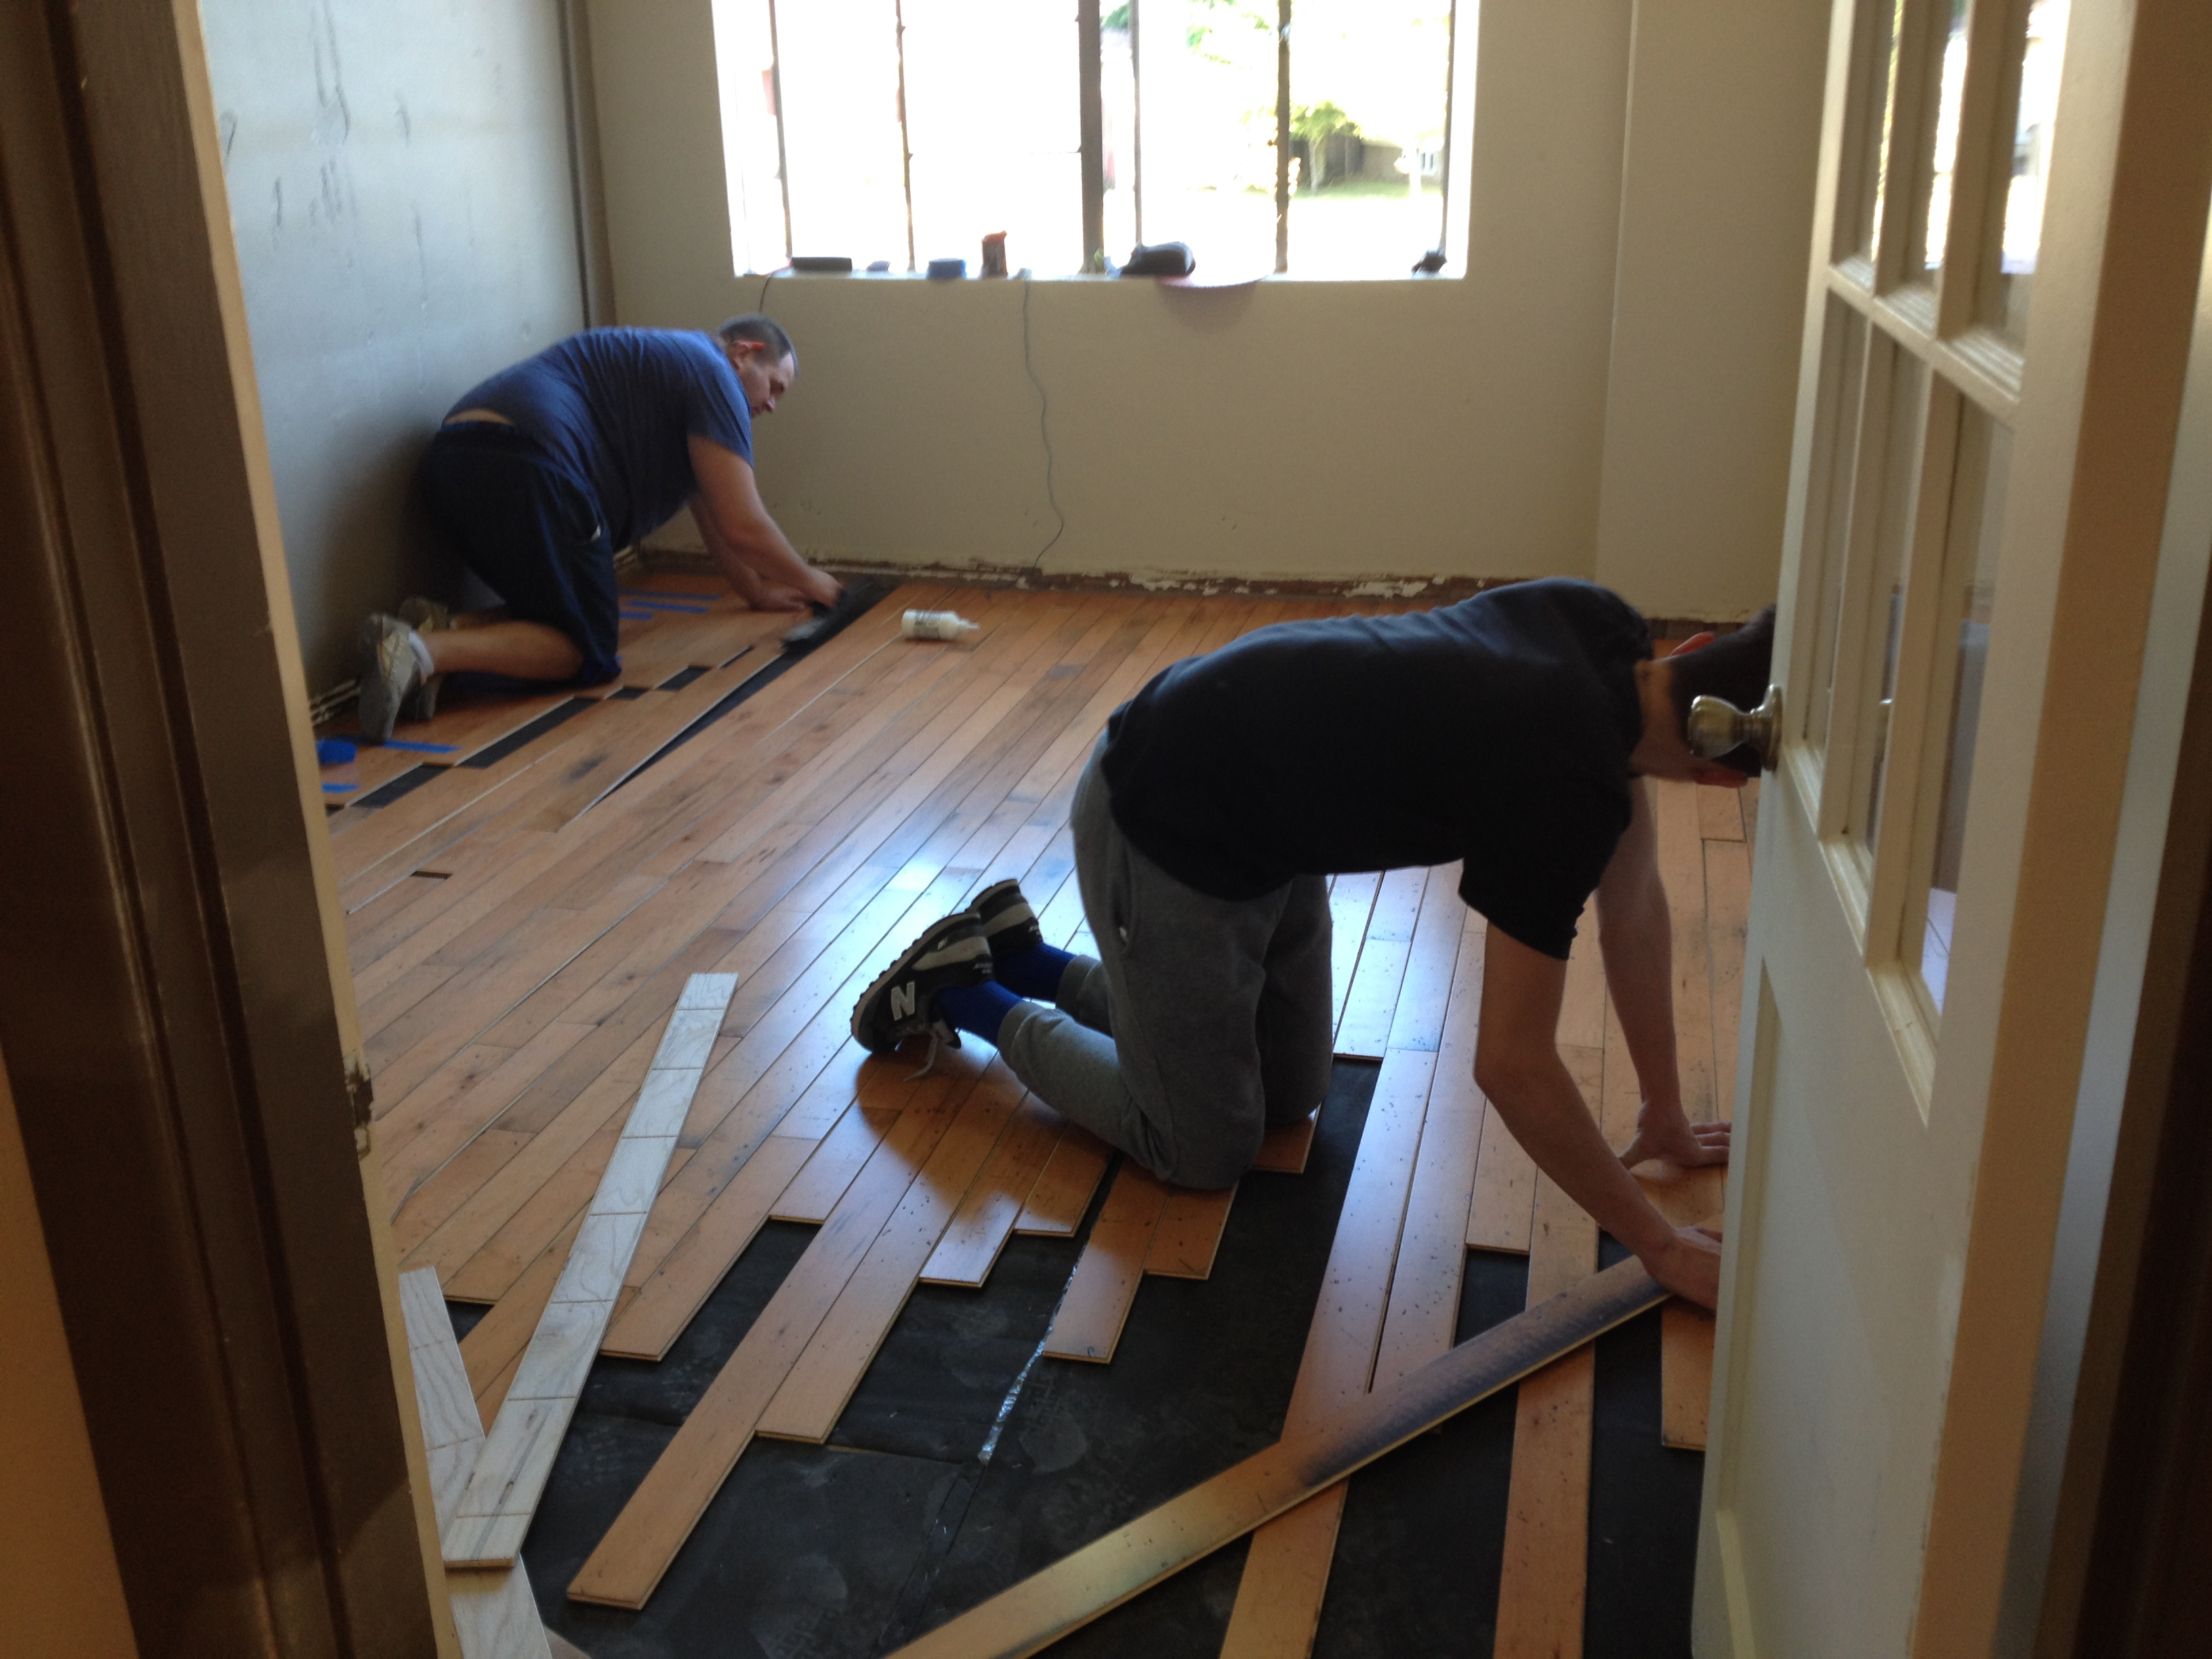 Workers From Macadam Floor U0026 Design Are Laying The New Floors With Material  Donated Through The